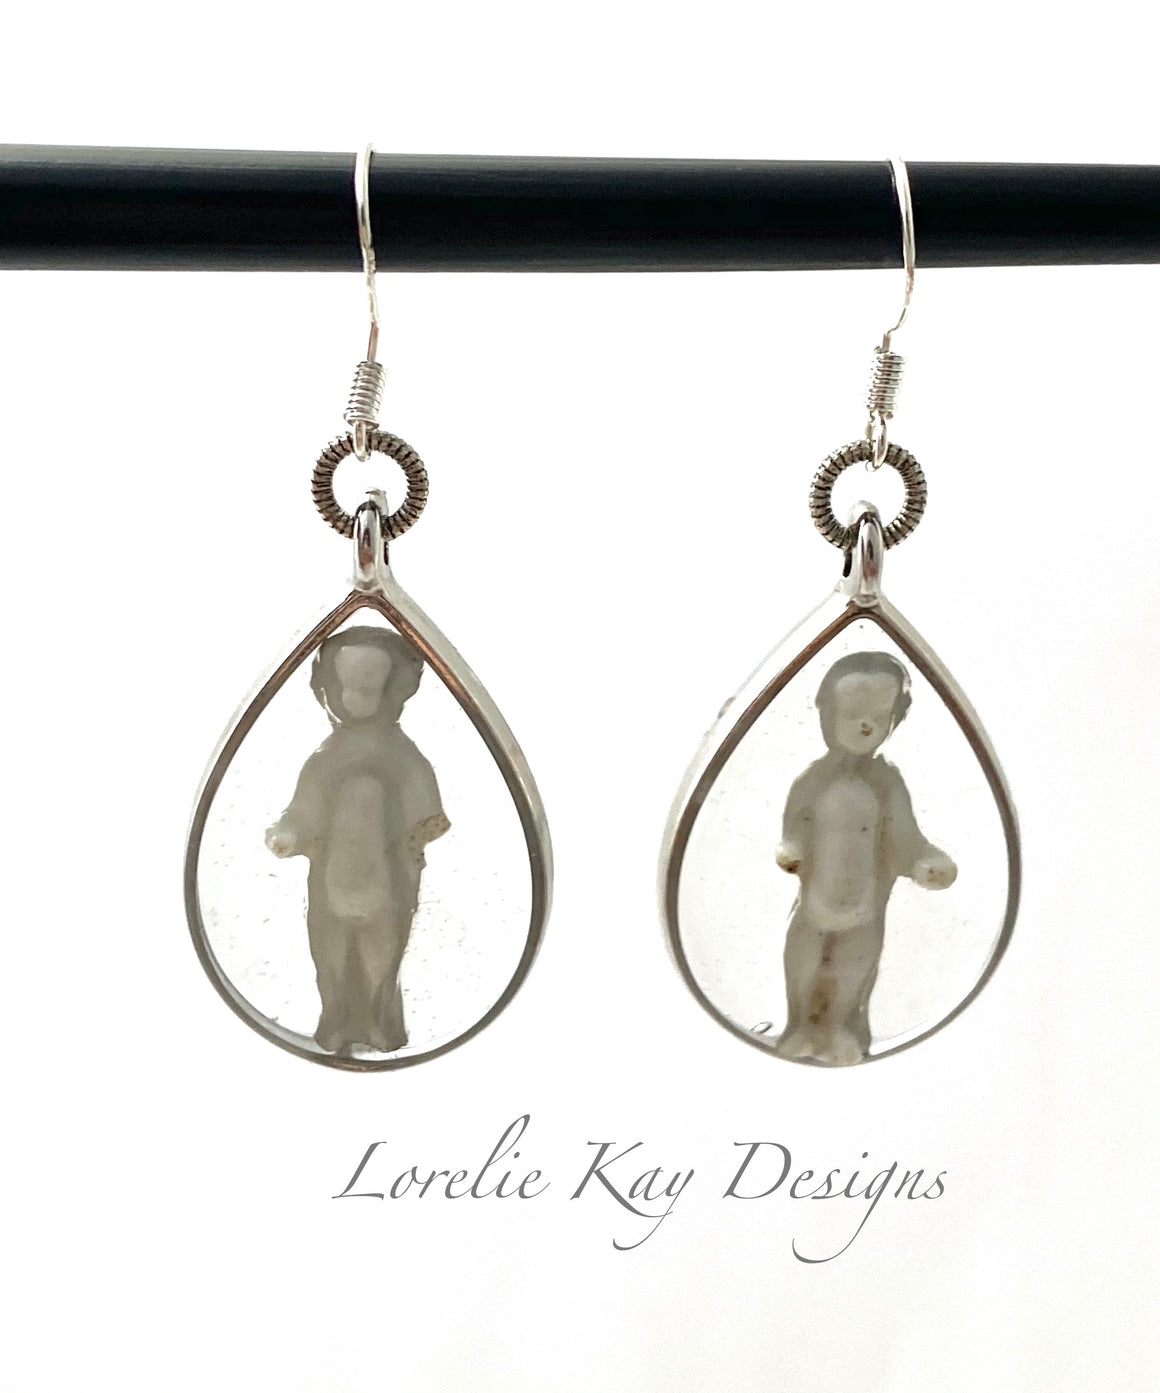 Frozen Charlotte Doll Earrings Sterling Plate Dangles